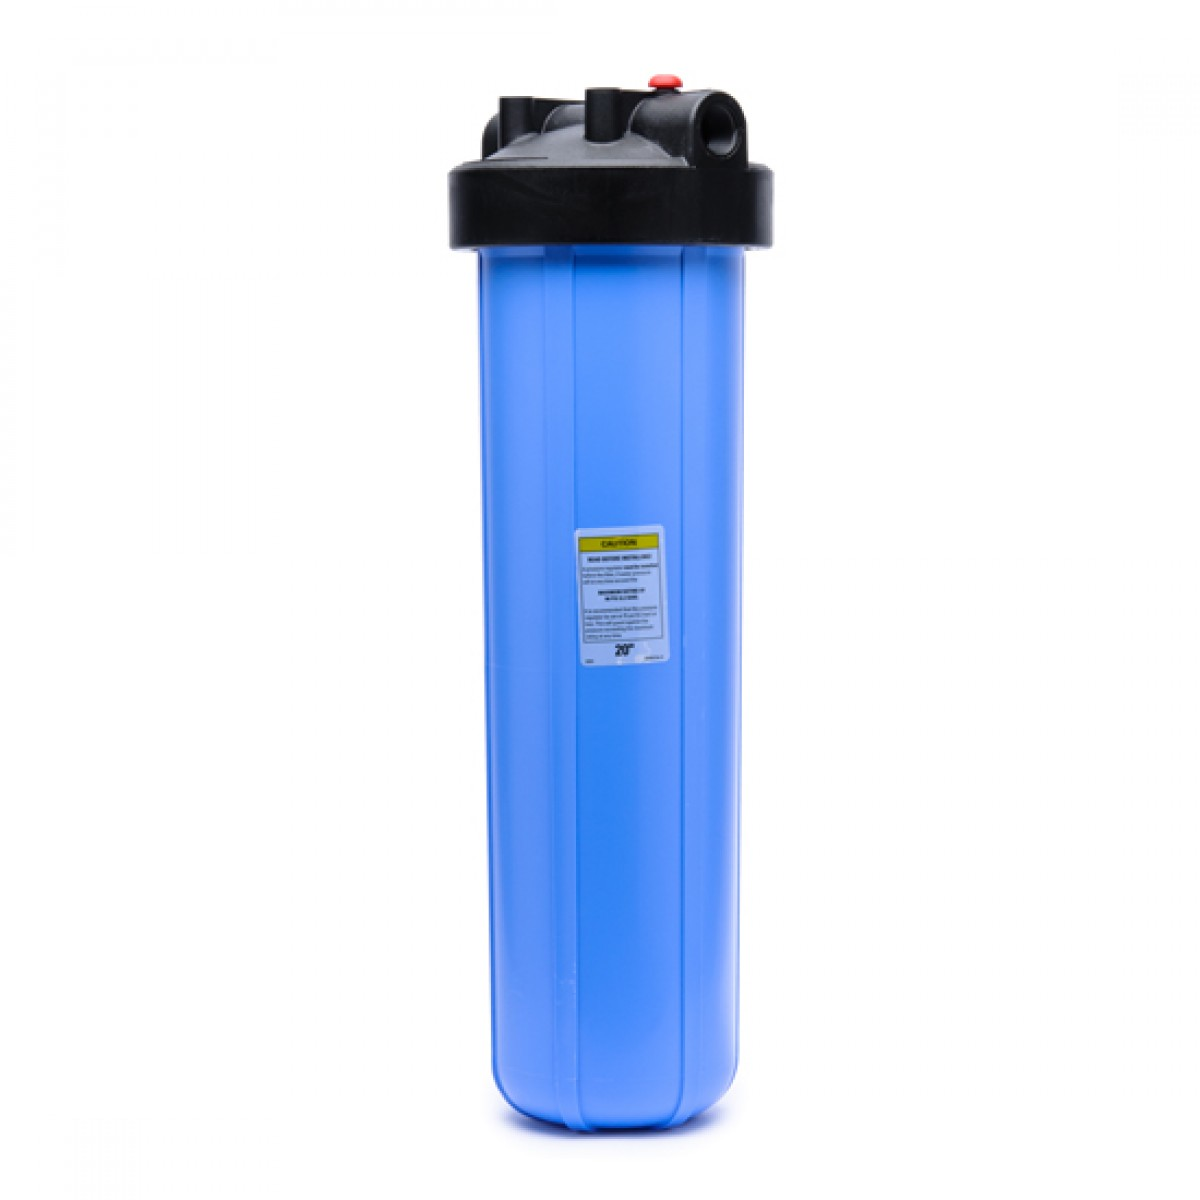 20 BB 1 Inch Whole House Water Filter System